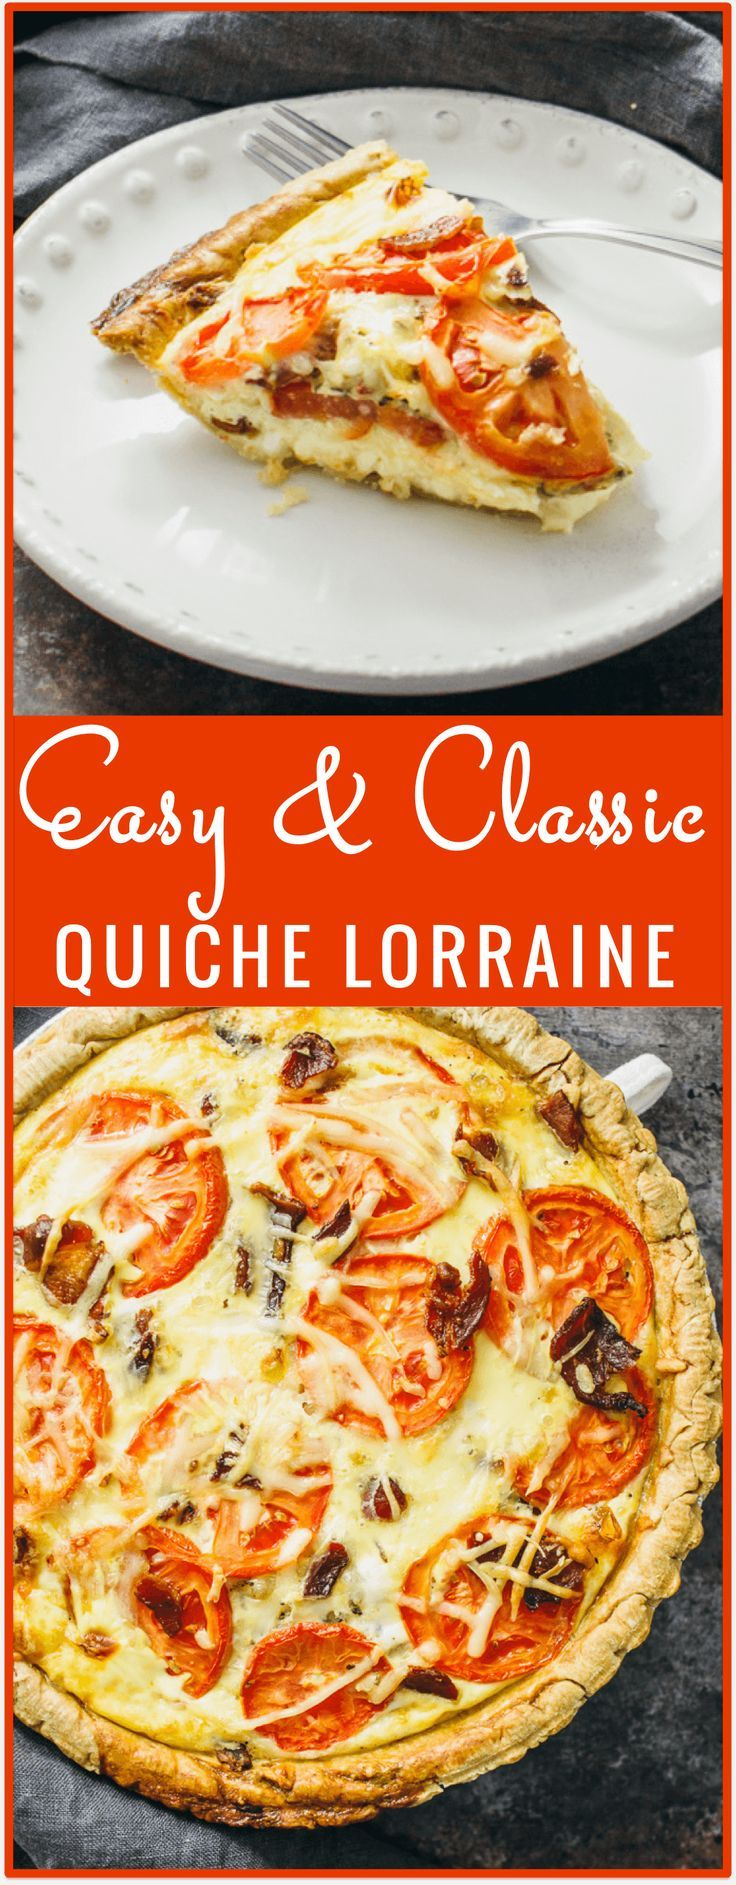 Quiche lorraine - Slice into this comforting quiche lorraine, filled with crispy crumbled bacon, sliced tomatoes, eggs, and pepper jack cheese. Its an easy oven recipe for a classic and healthy quiche lorraine. - savorytooth.com